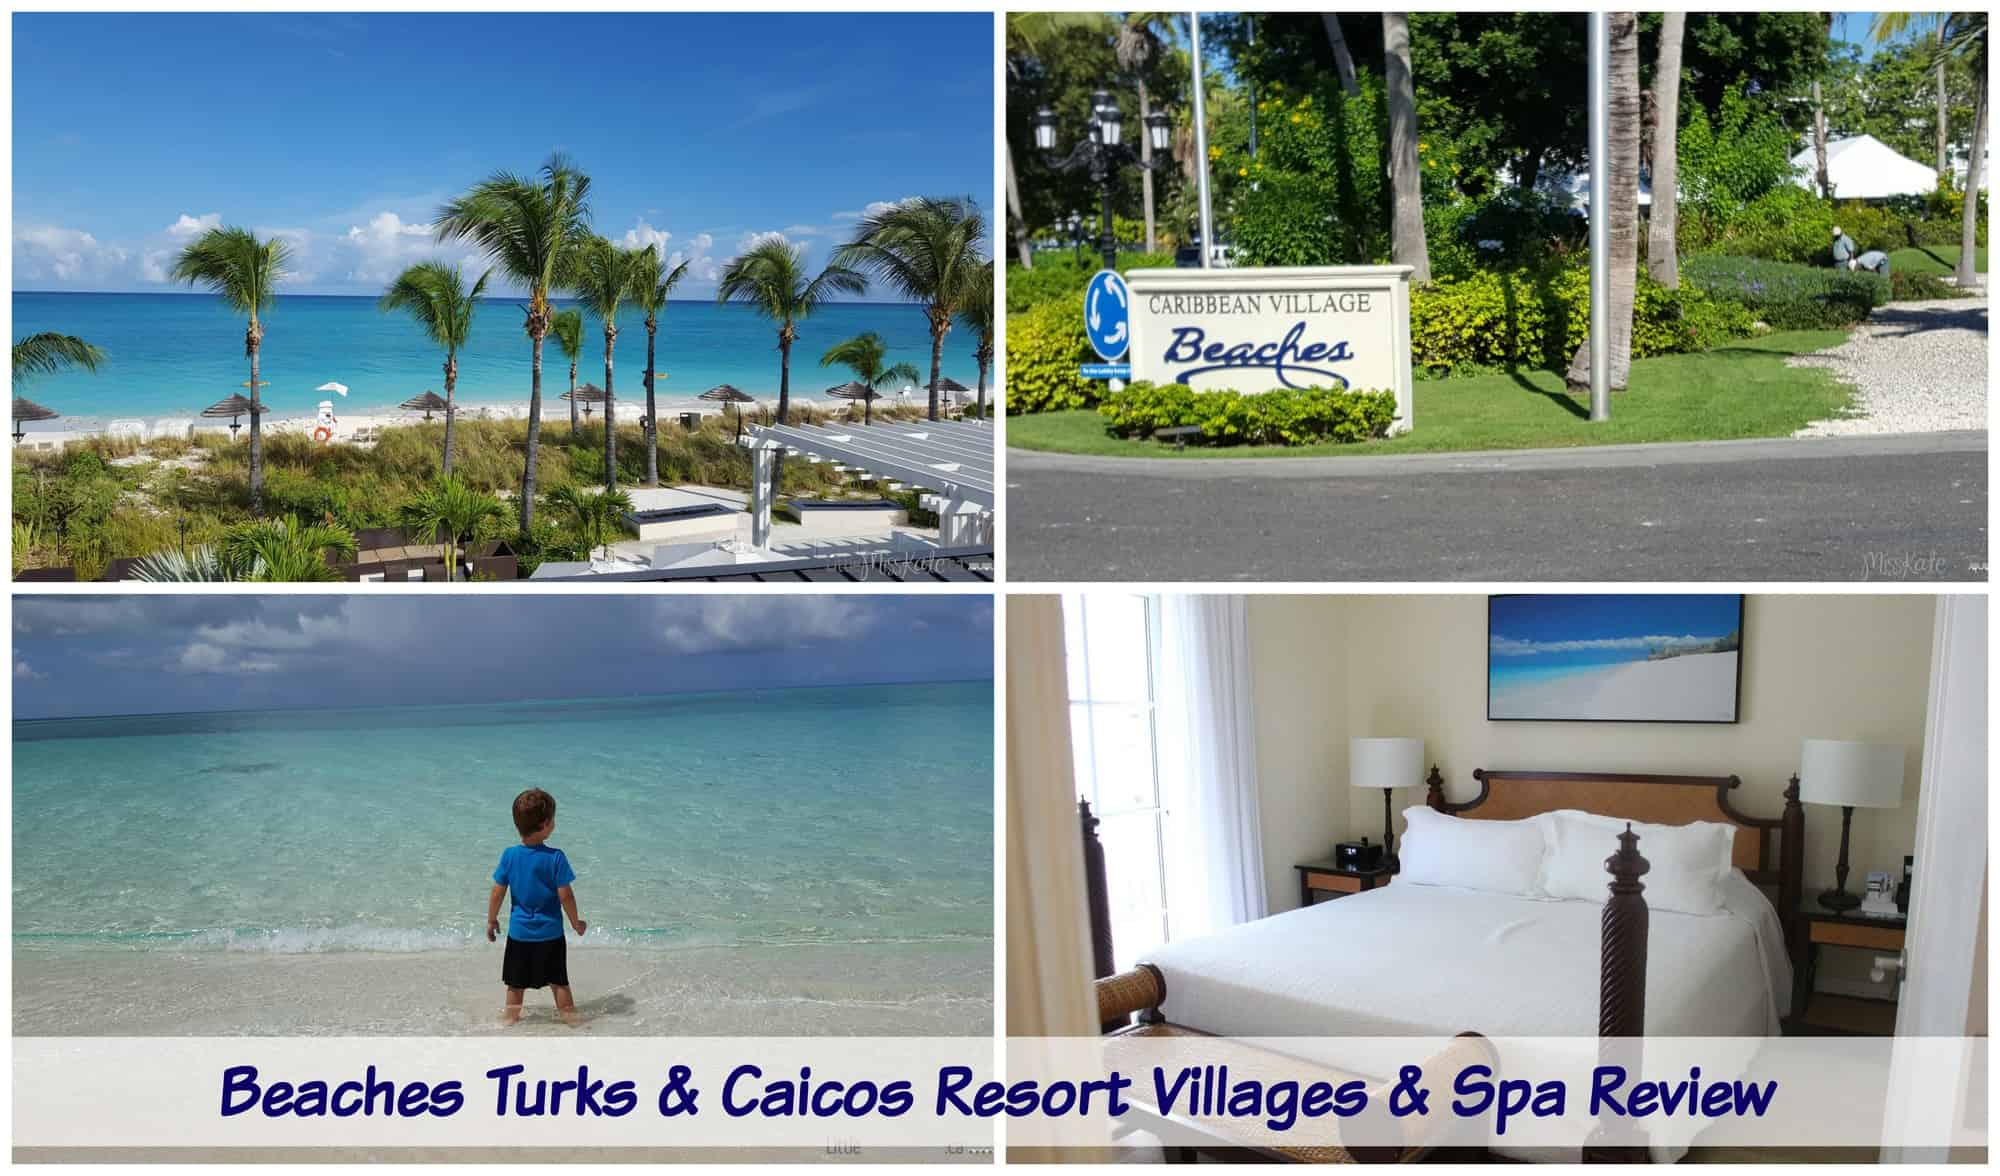 Beaches Turks & Caicos Resort Villages & Spa Complete Review